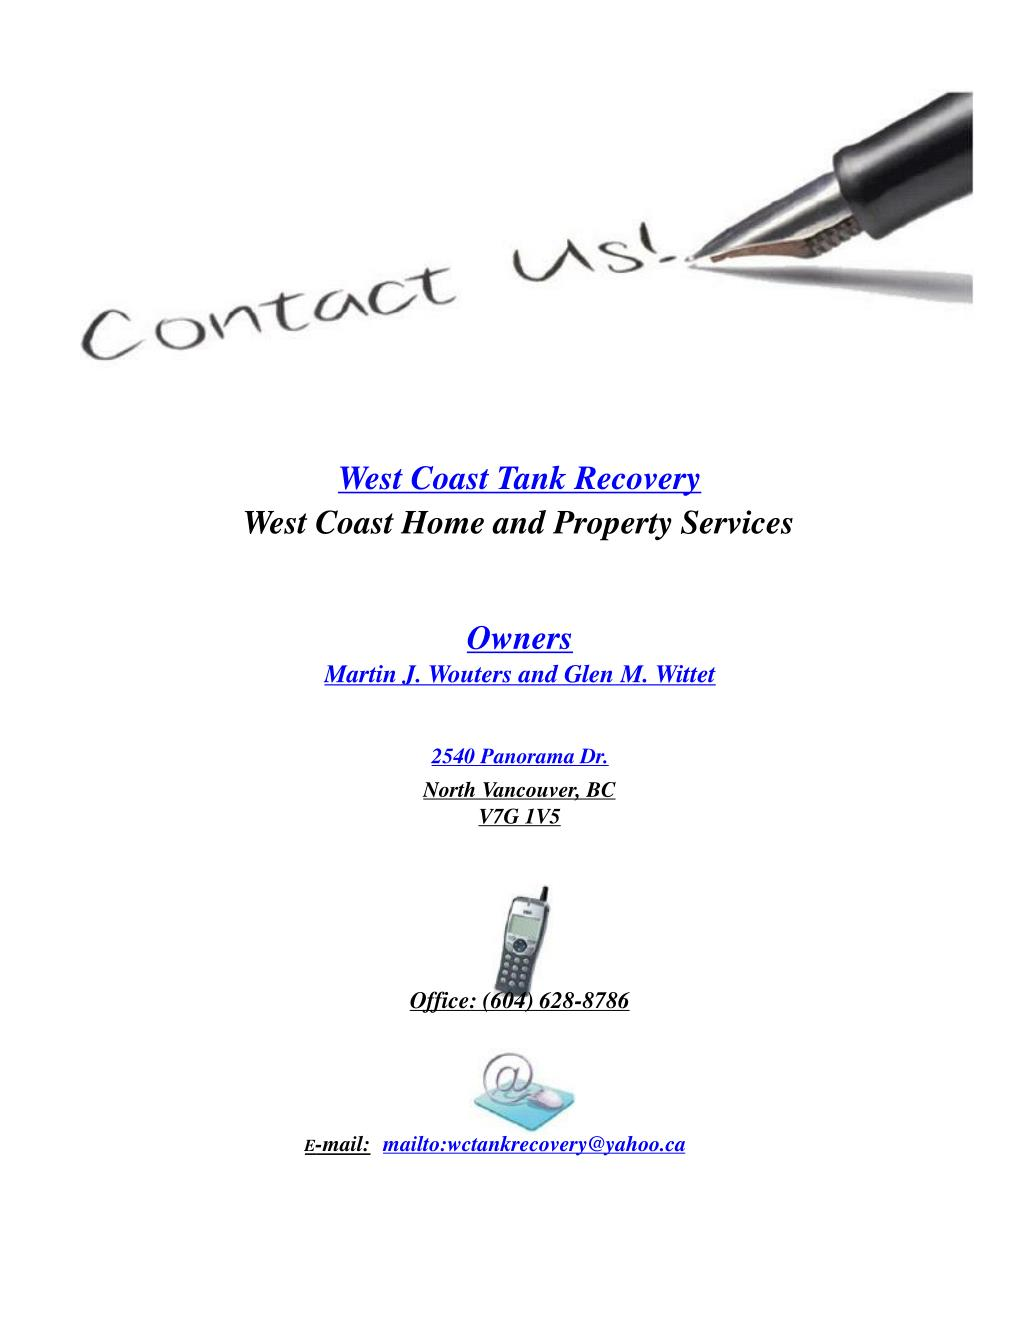 West Coast Tank Recovery